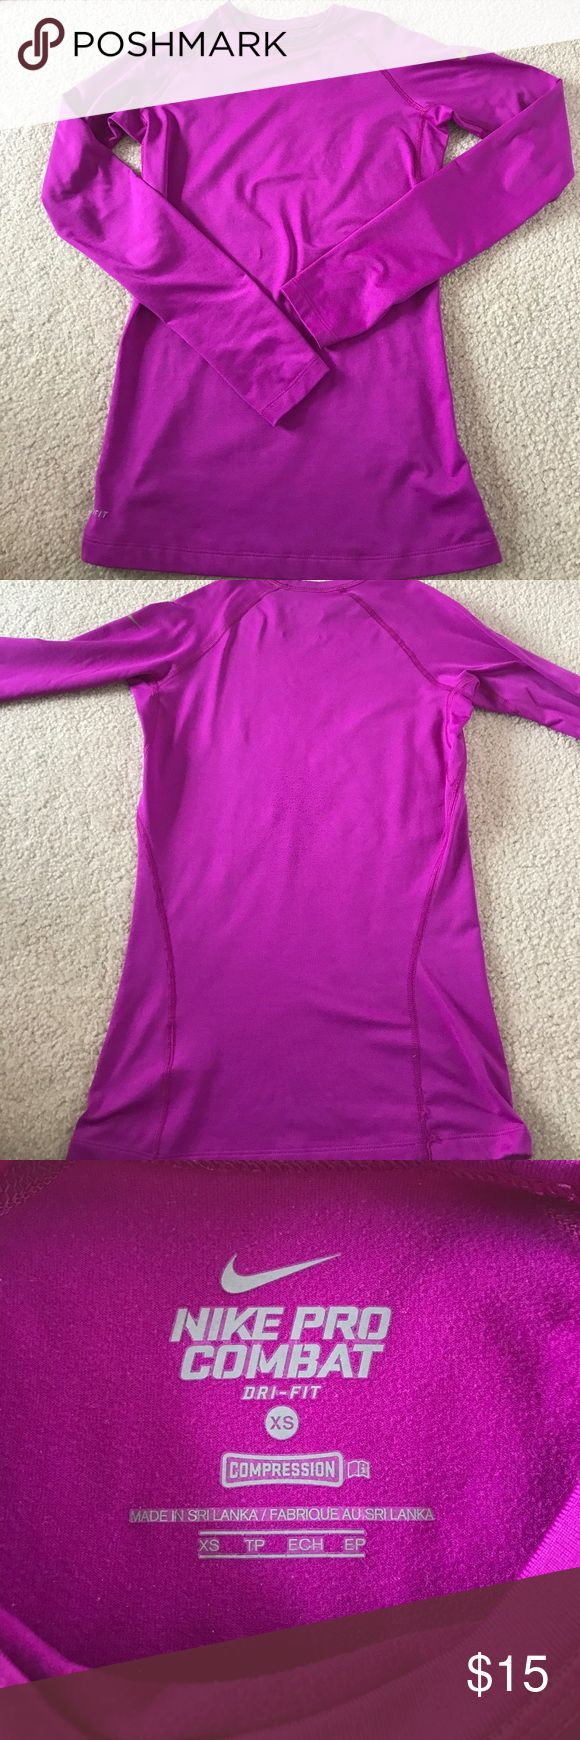 Nike Purple Long Sleeved Shirt This has been worn a few times and it's been tucked away in the back of my closet for many years now. It is a dri-fit Nike Pro Combat purple shirt, and is tight fitting to the body. It's made out of thicker material, perfect for the autumn or wintertime. It has thumb holes as shown in the 5th photo. However, there is slight damage to it as some areas have frayed a little (seen in the fifth photo) but it is not noticeable. Feel free to ask for a price reduction…